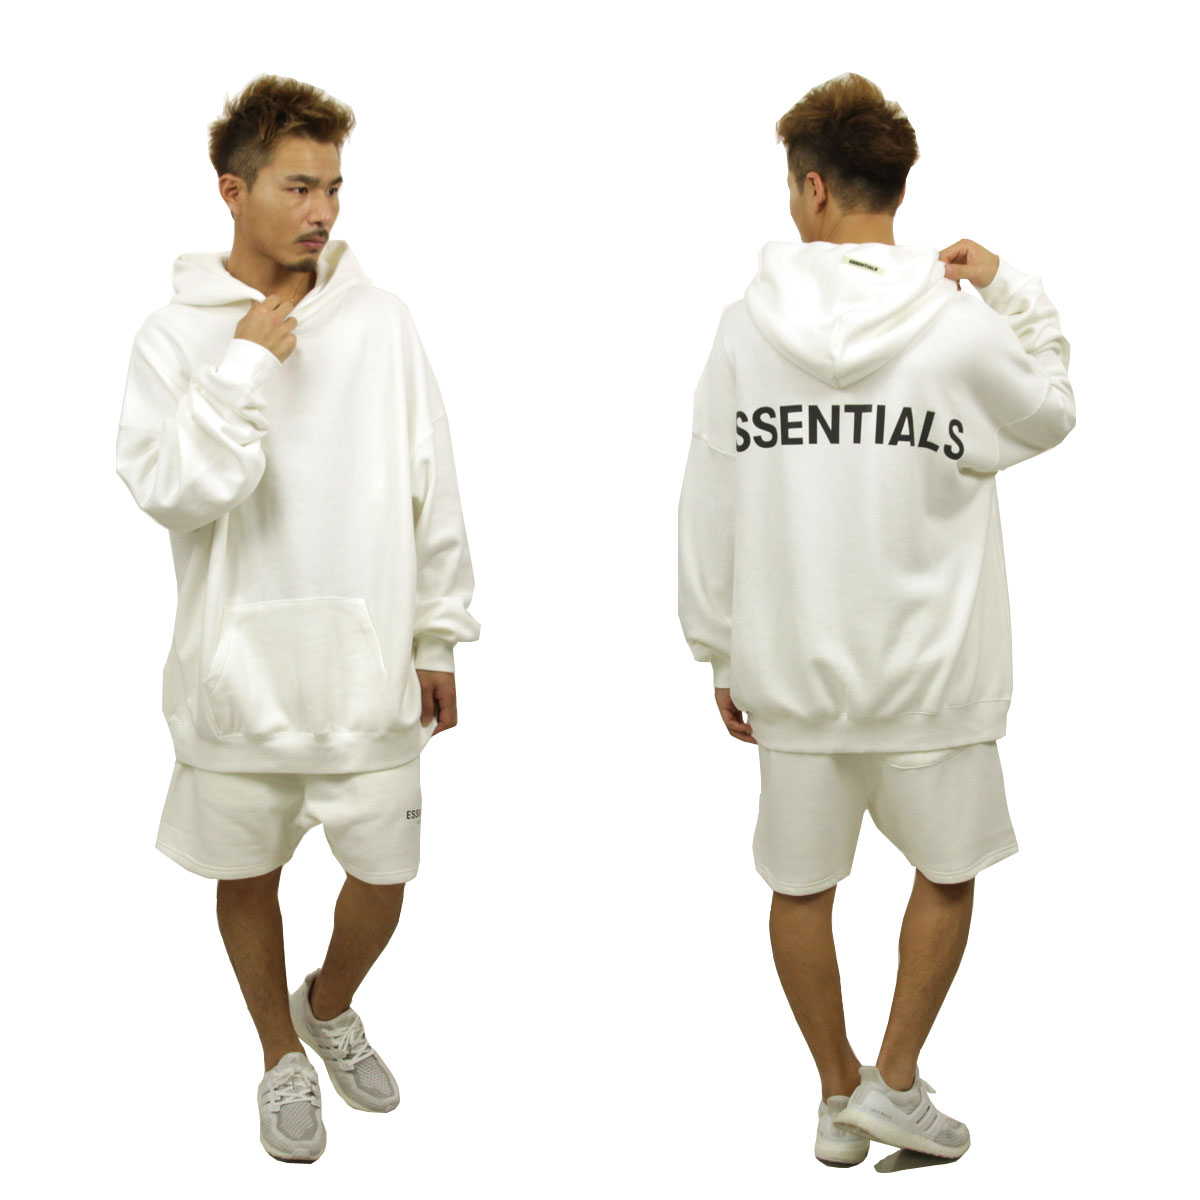 フィアオブゴッド パーカー メンズ 正規品 FEAR OF GOD プルオーバーパーカー ロゴ FOG - FEAR OF GOD ESSENTIALS PULLOVER HOODIE WHITE AA5B B1C C1D D5E E01F